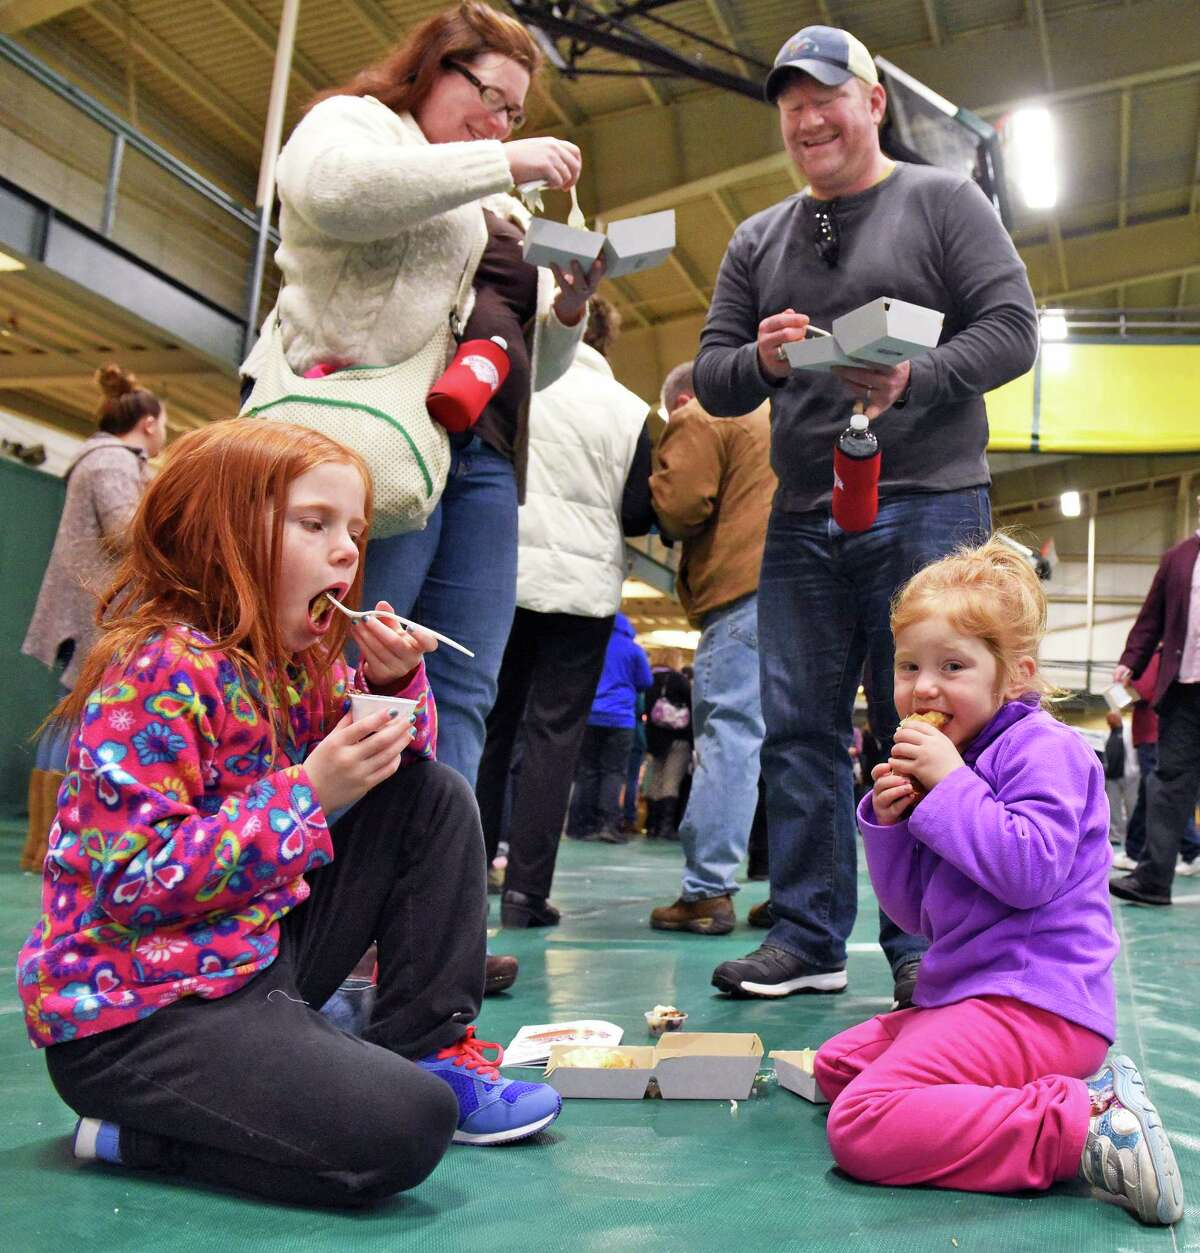 Elizabeth and Tim Dunn of Malta and daughters Evelyn, 7, left, and Maureen, 4, taste the offerings at the 8th Annual Mac-n-Cheese Bowl Saturday Feb. 18, 2017 in Colonie, NY. (John Carl D'Annibale / Times Union)